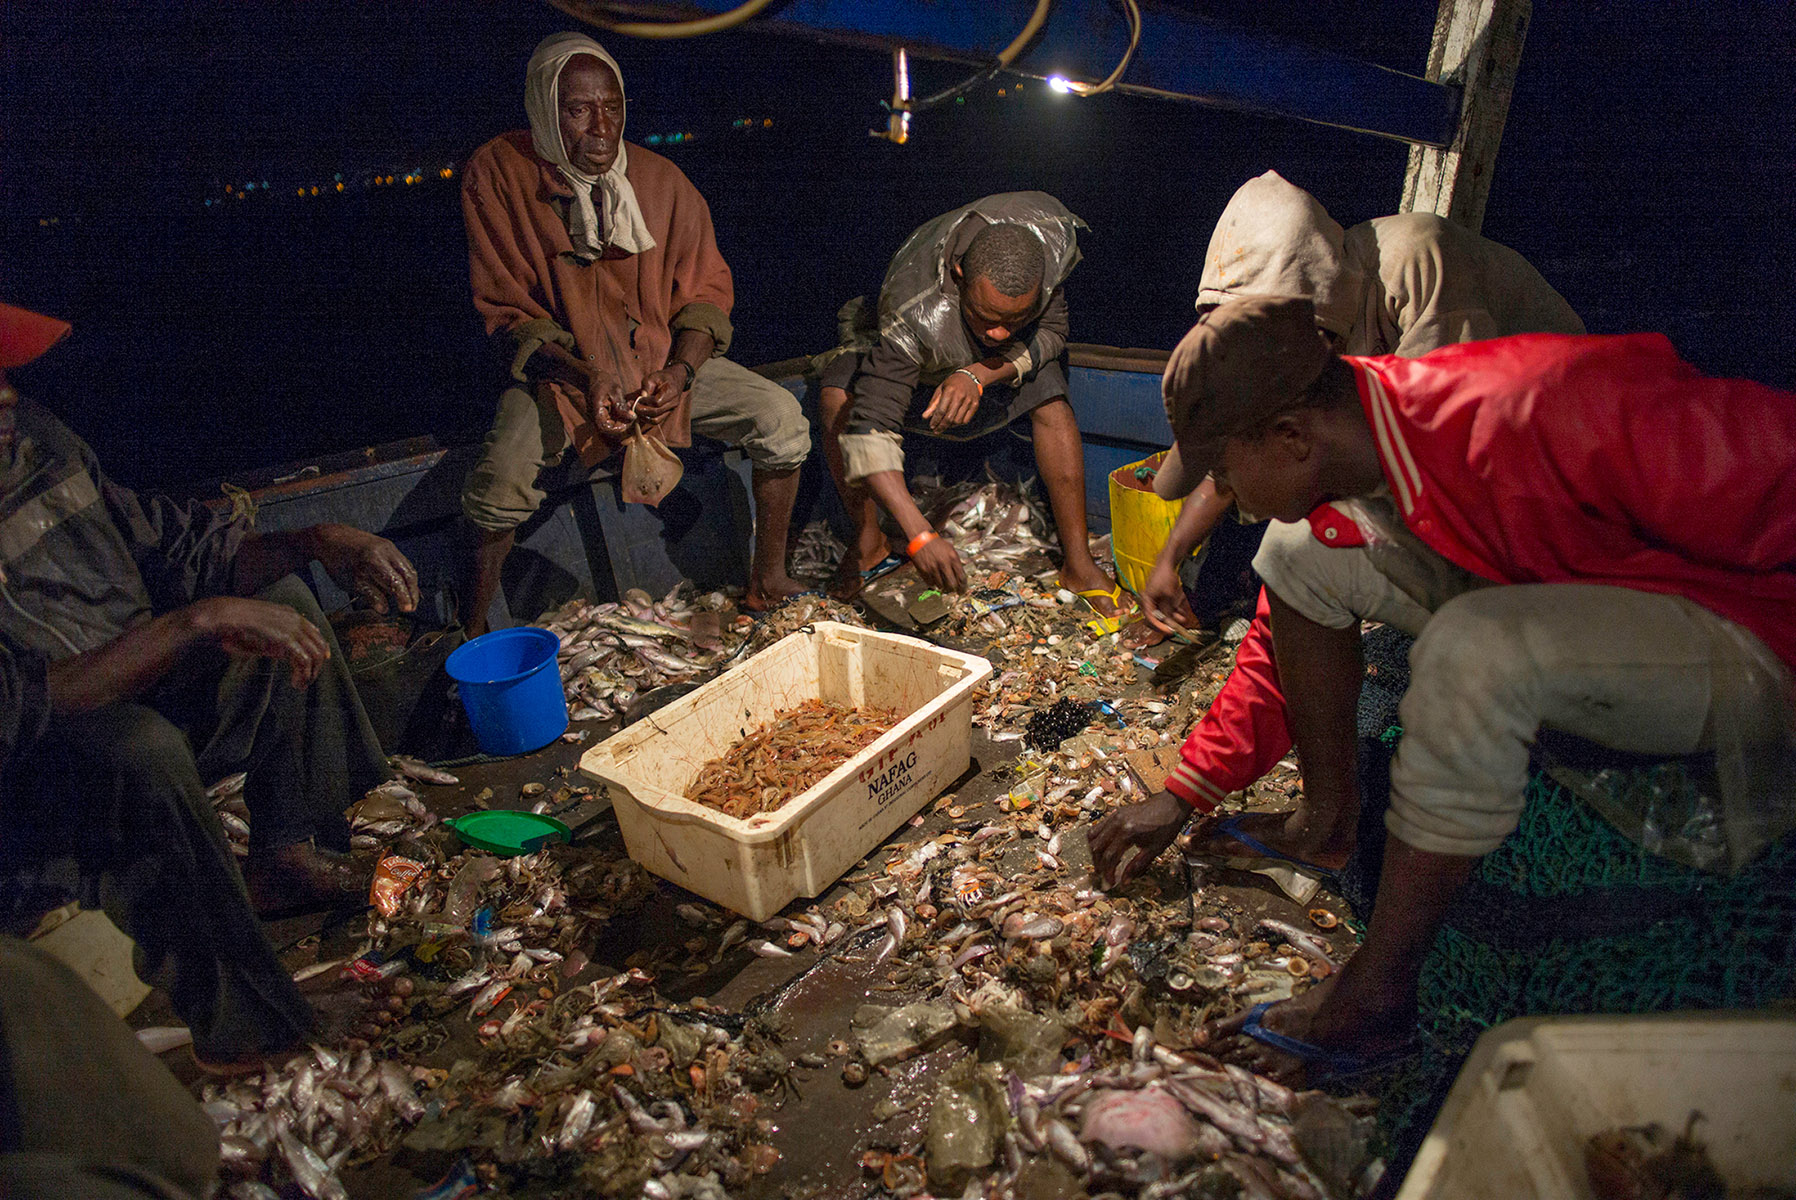 Frank Day, Trawling for Shrimp, Syngenta Photo Award